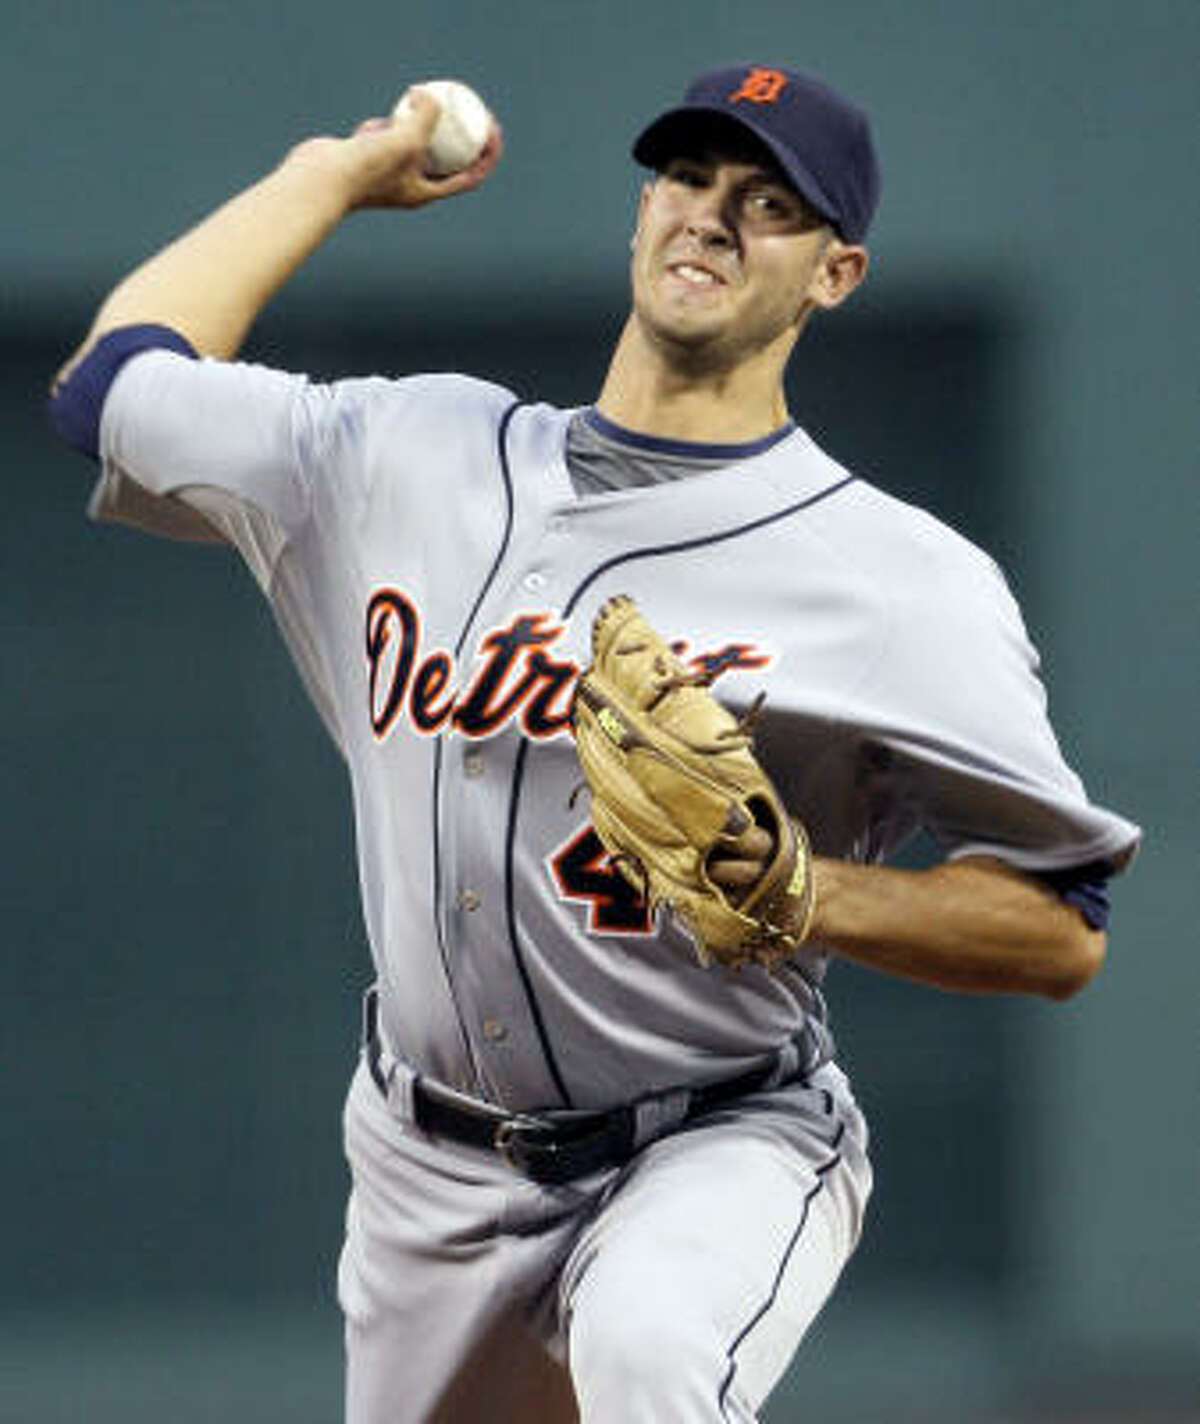 Detroit Tigers starter Rick Porcello was ejected in the second inning after hitting Red Sox first baseman Kevin Youkilis with a pitch. Youkilis was also ejected after he charged the mound, causing both teams' benches to clear.